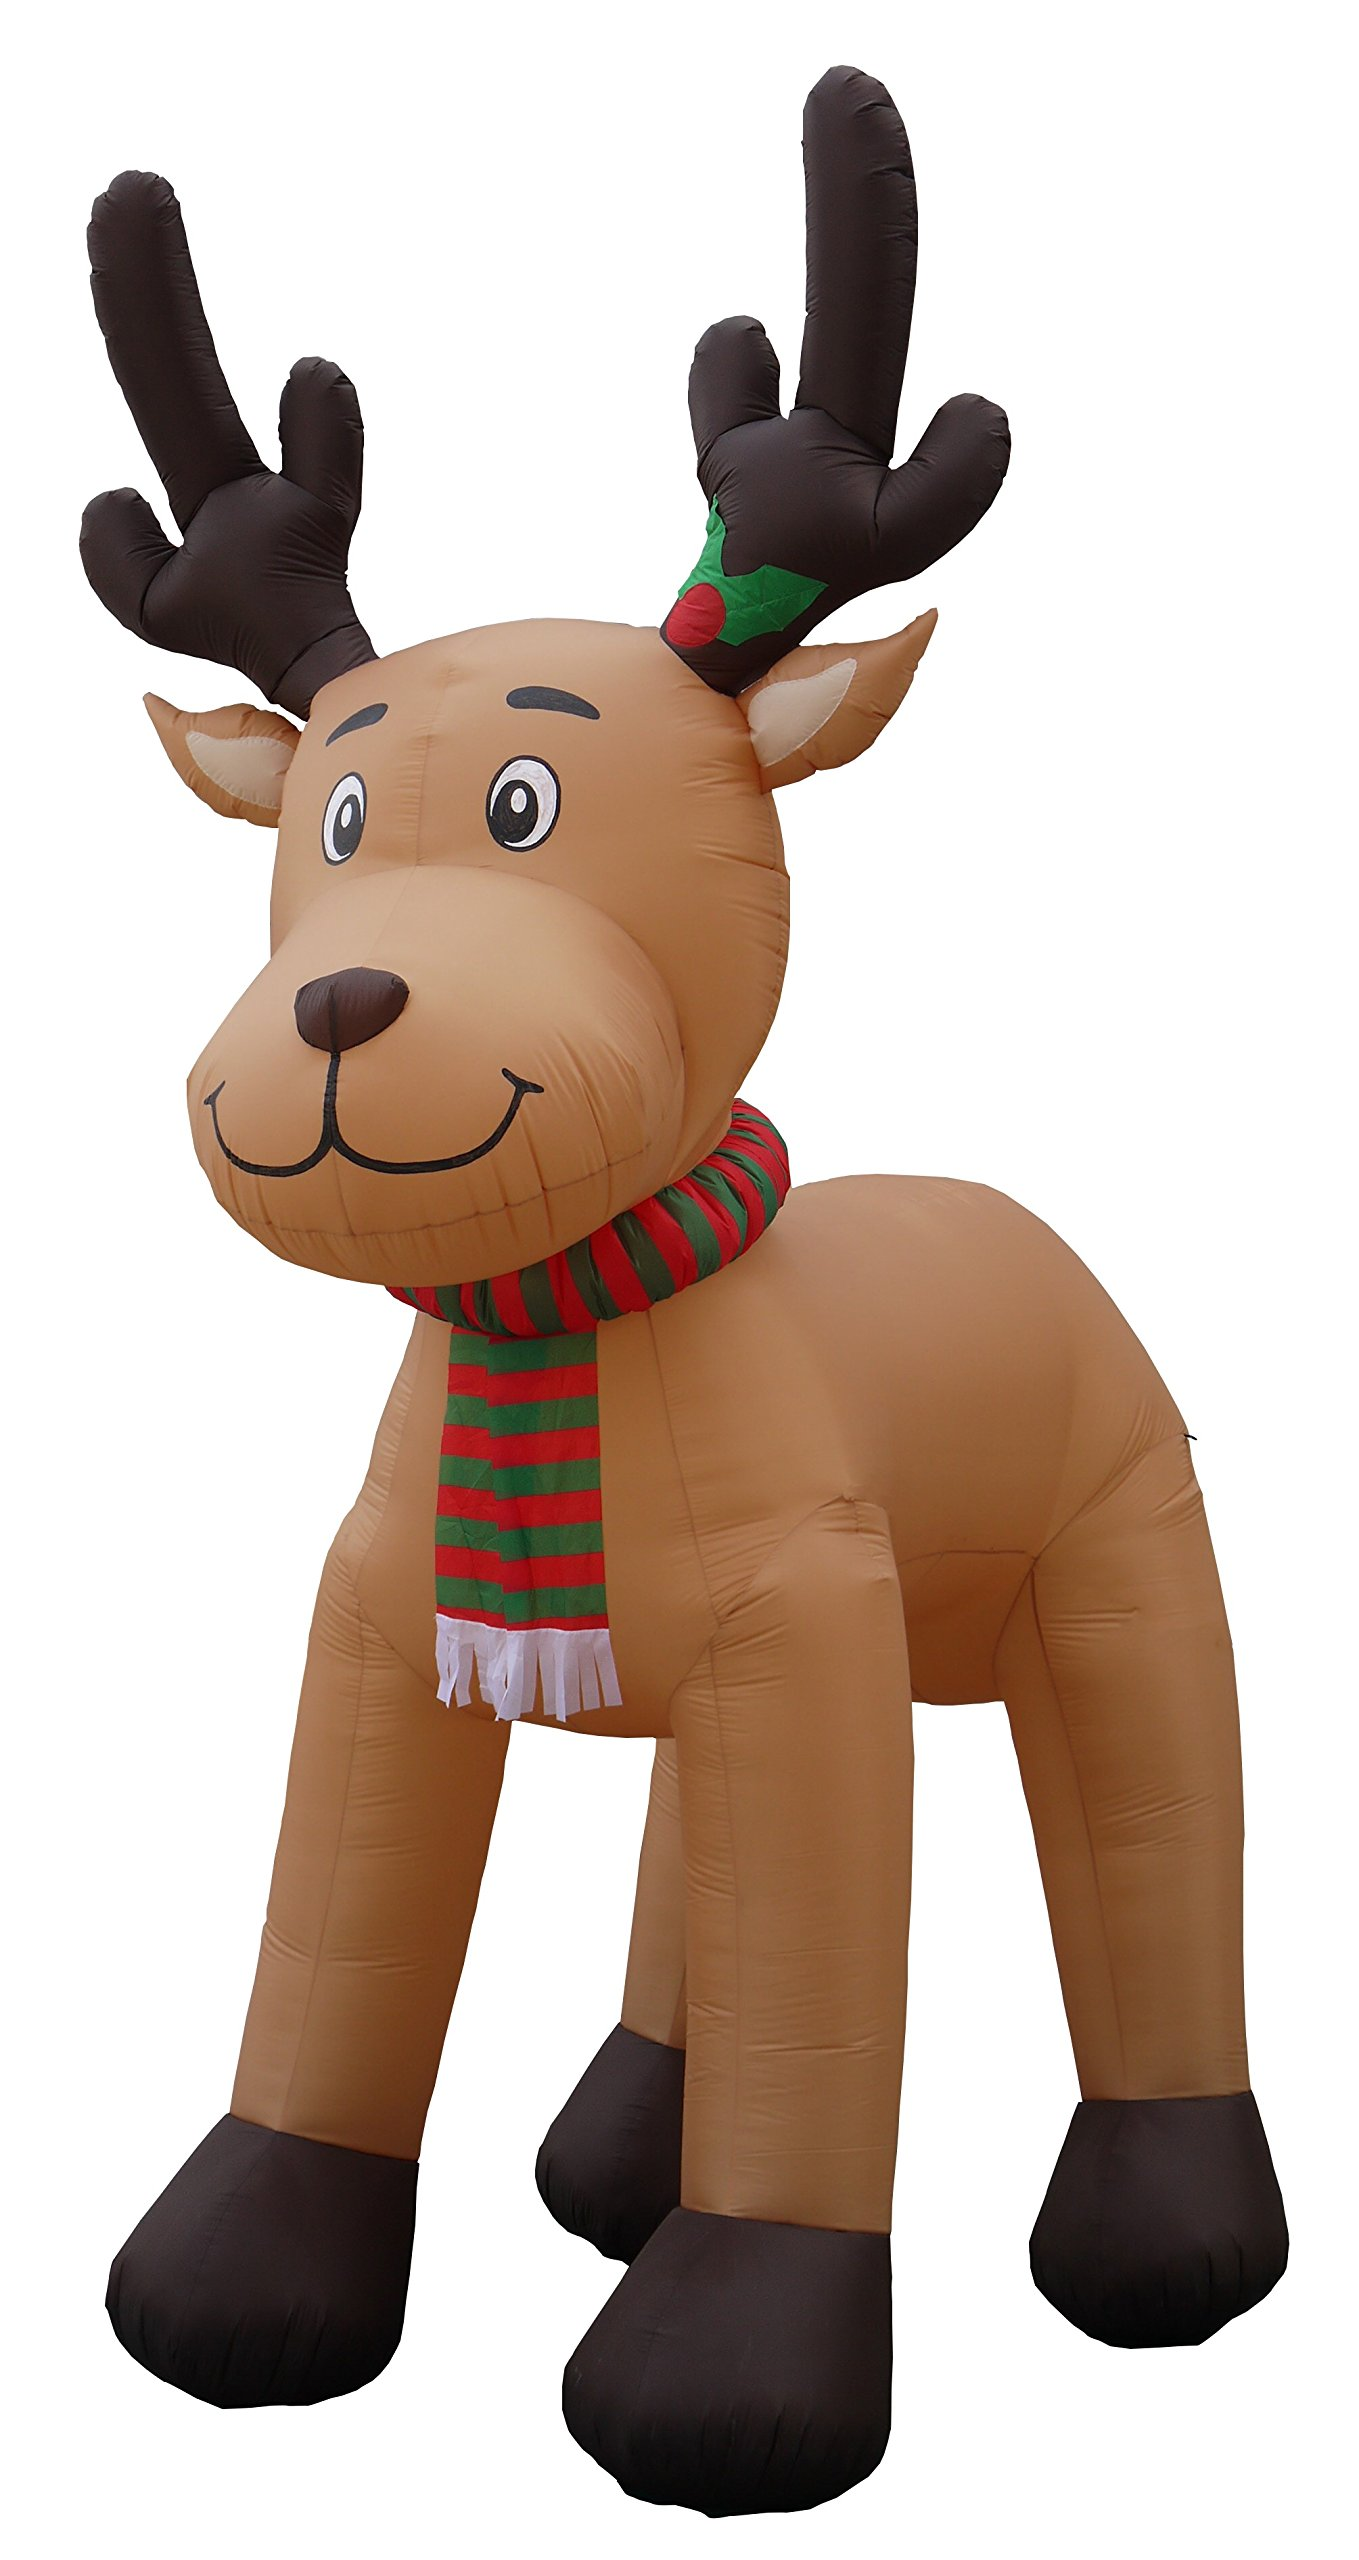 JUMBO 15 Foot Tall Christmas Inflatable Reindeer Outdoor Yard Decoration by BZB Goods